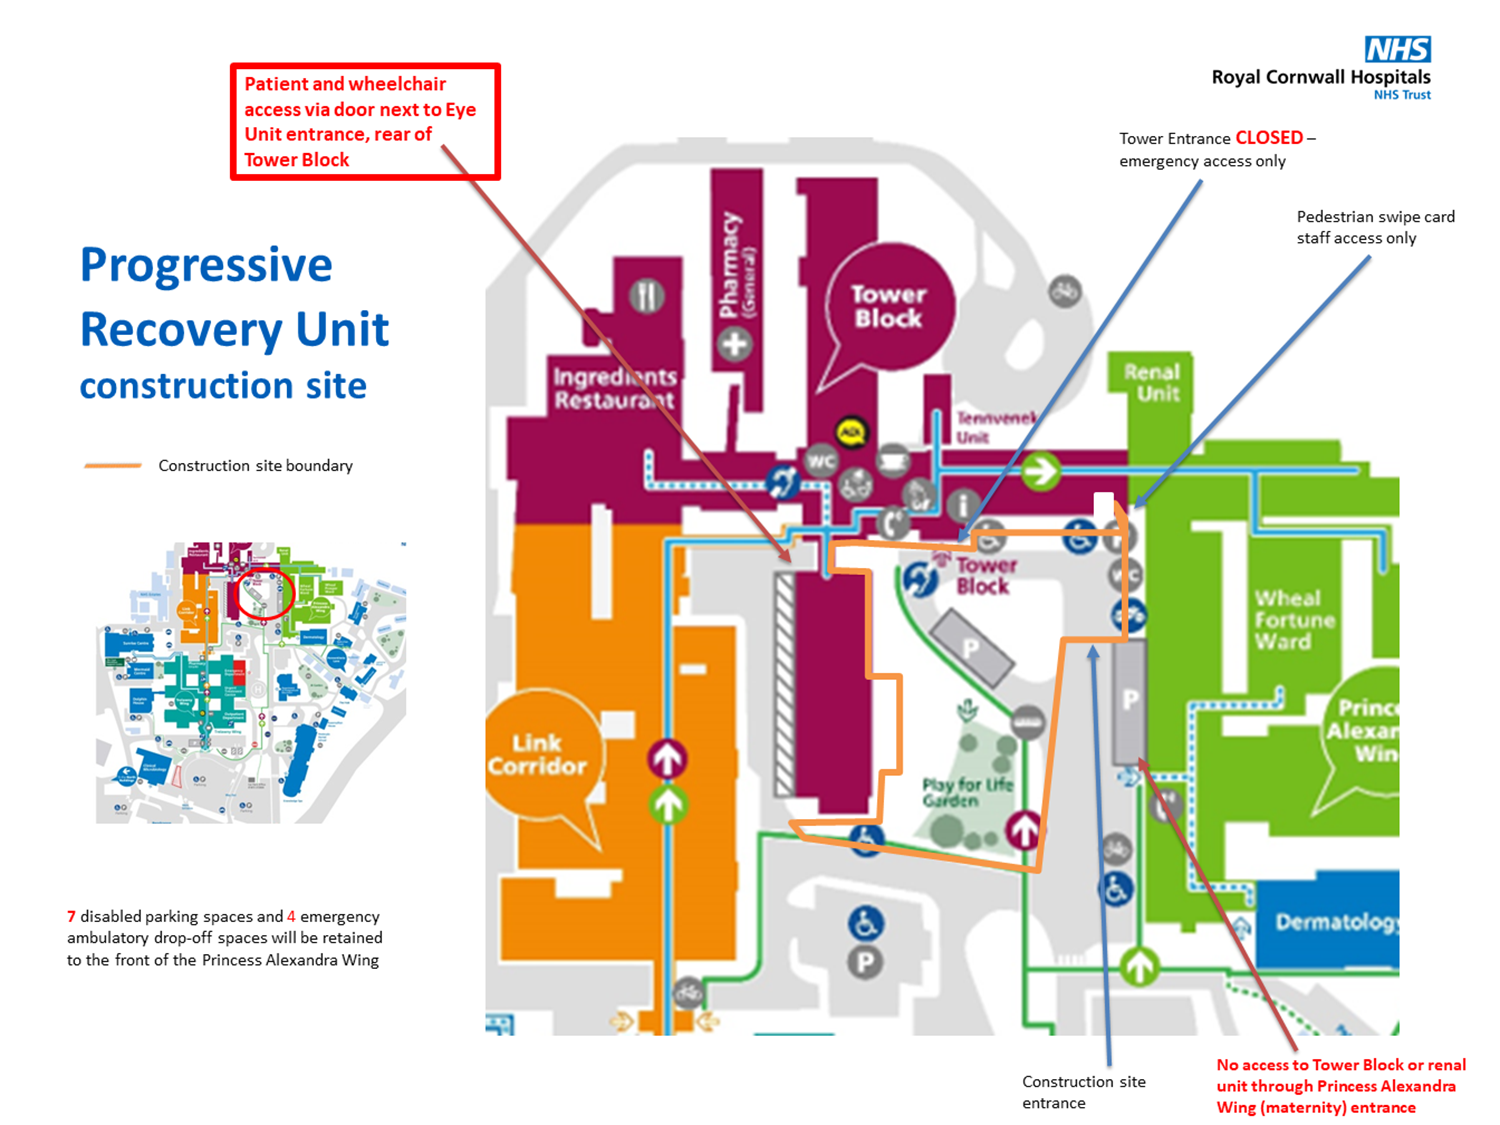 Public access map for progressive recovery unit contsruction site